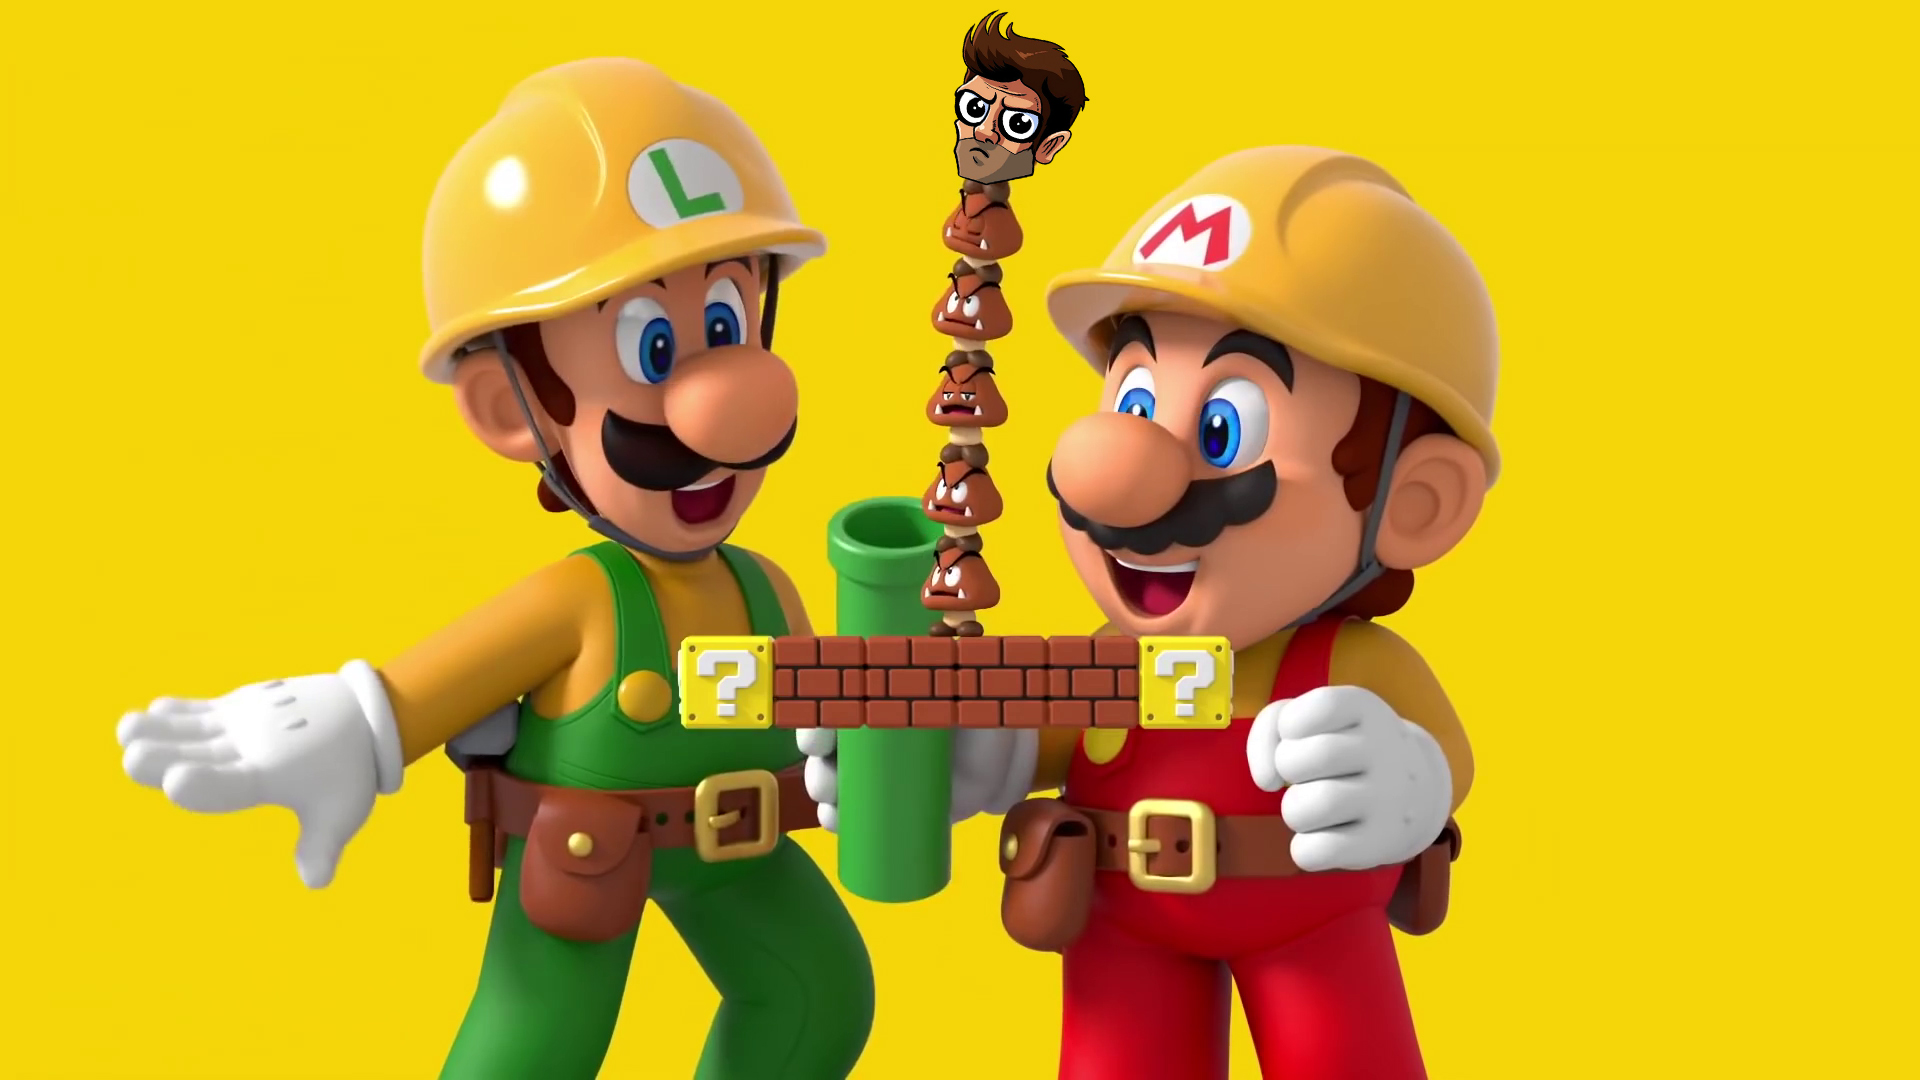 In today's episode of Pregame Discharge, Mario Maker 2 had a Nintendo Directicle and more!